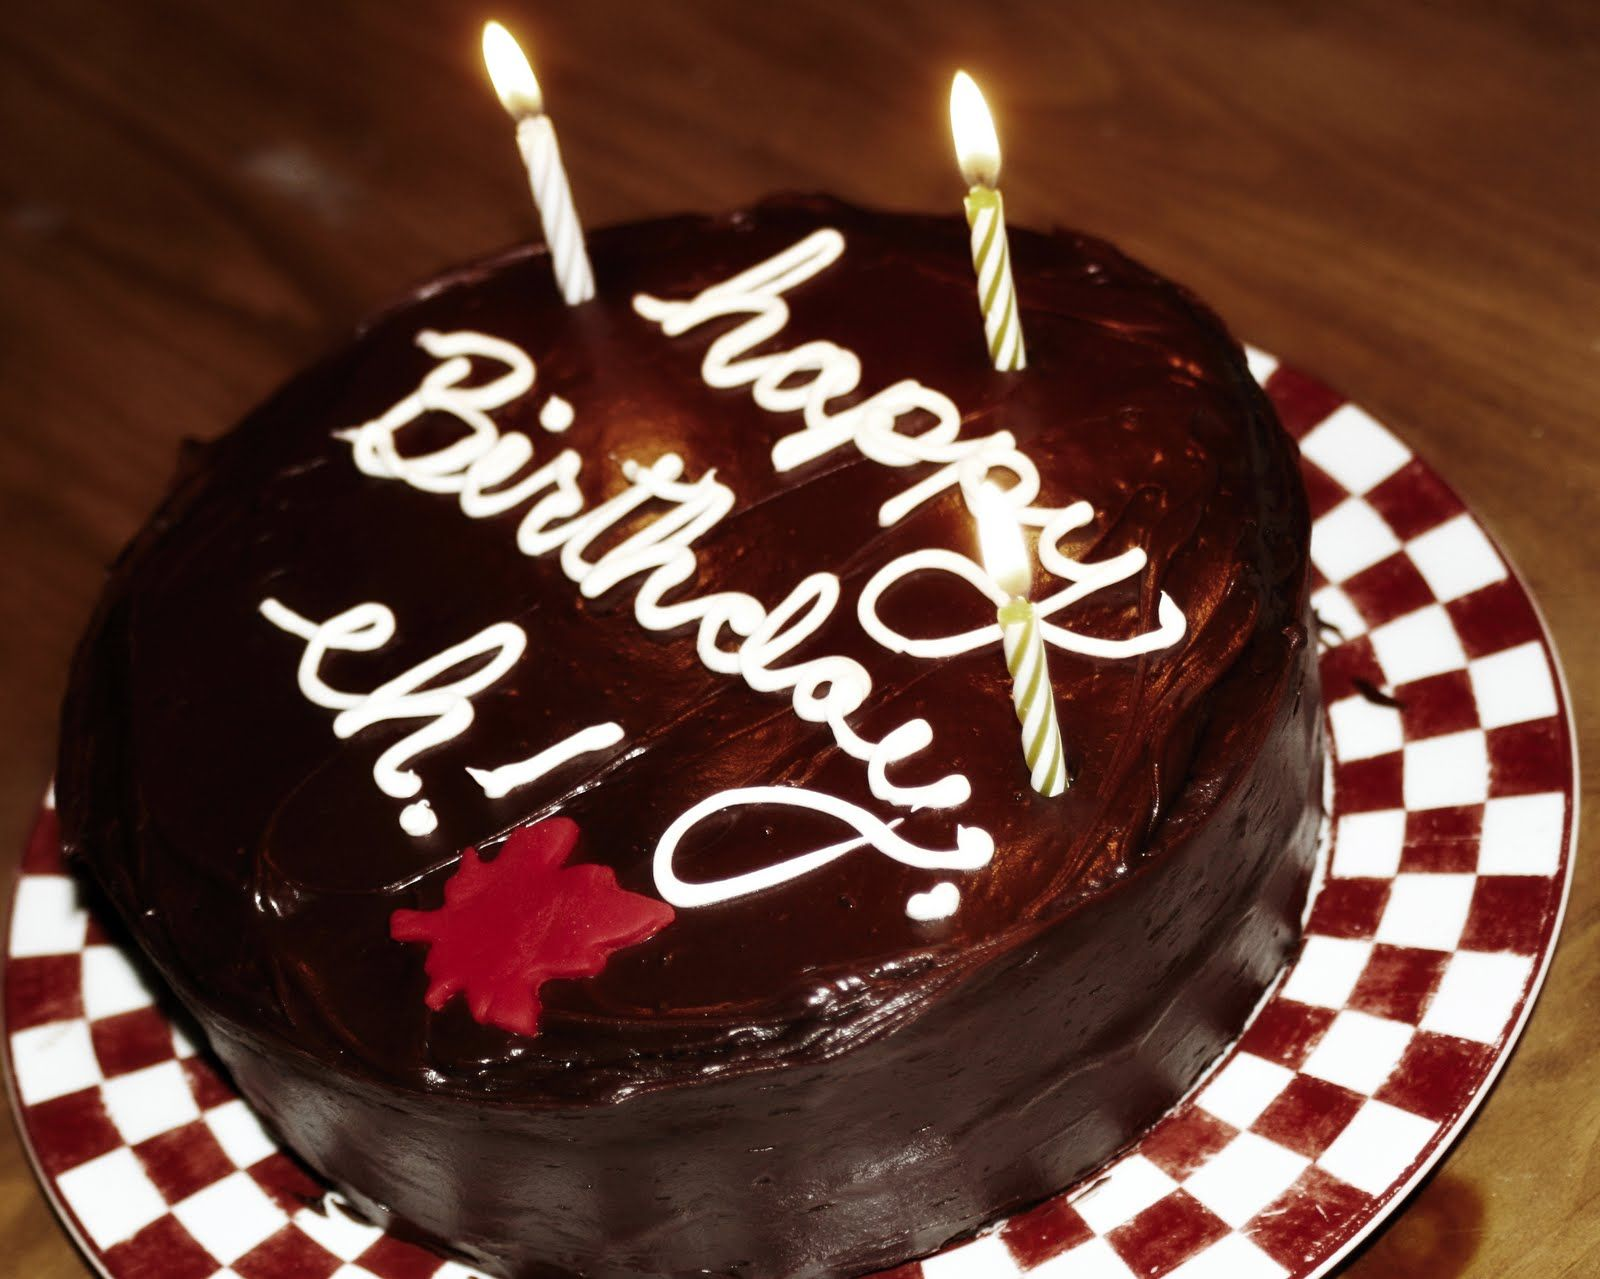 Happy Birthday Chocolate Cake with Candles 24870walljpg HD